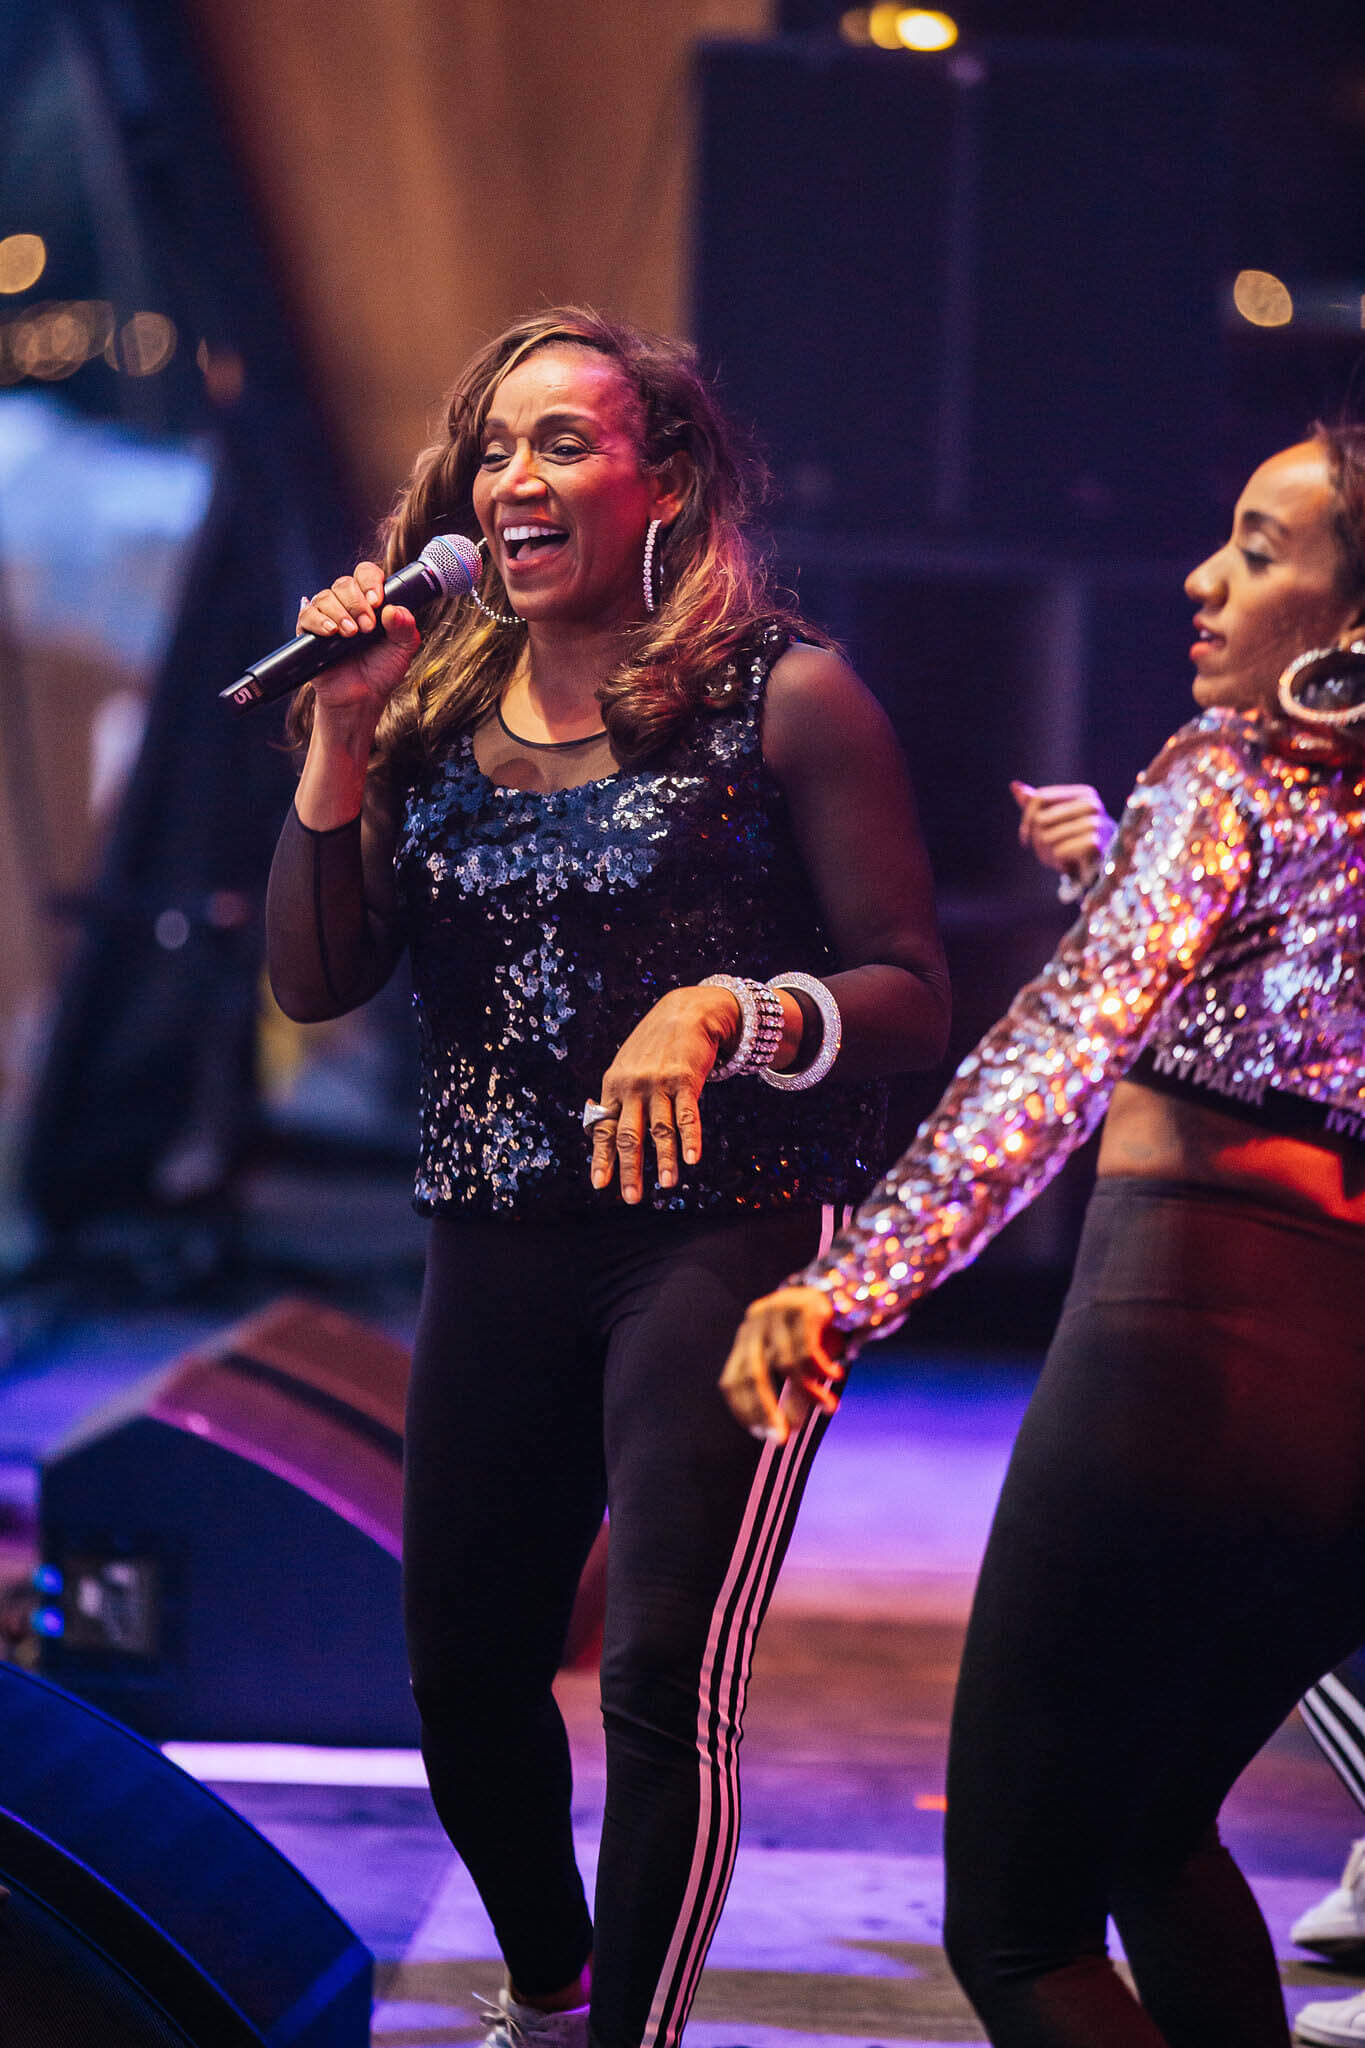 Rewind Festival South 2021 - Gallery Image 09